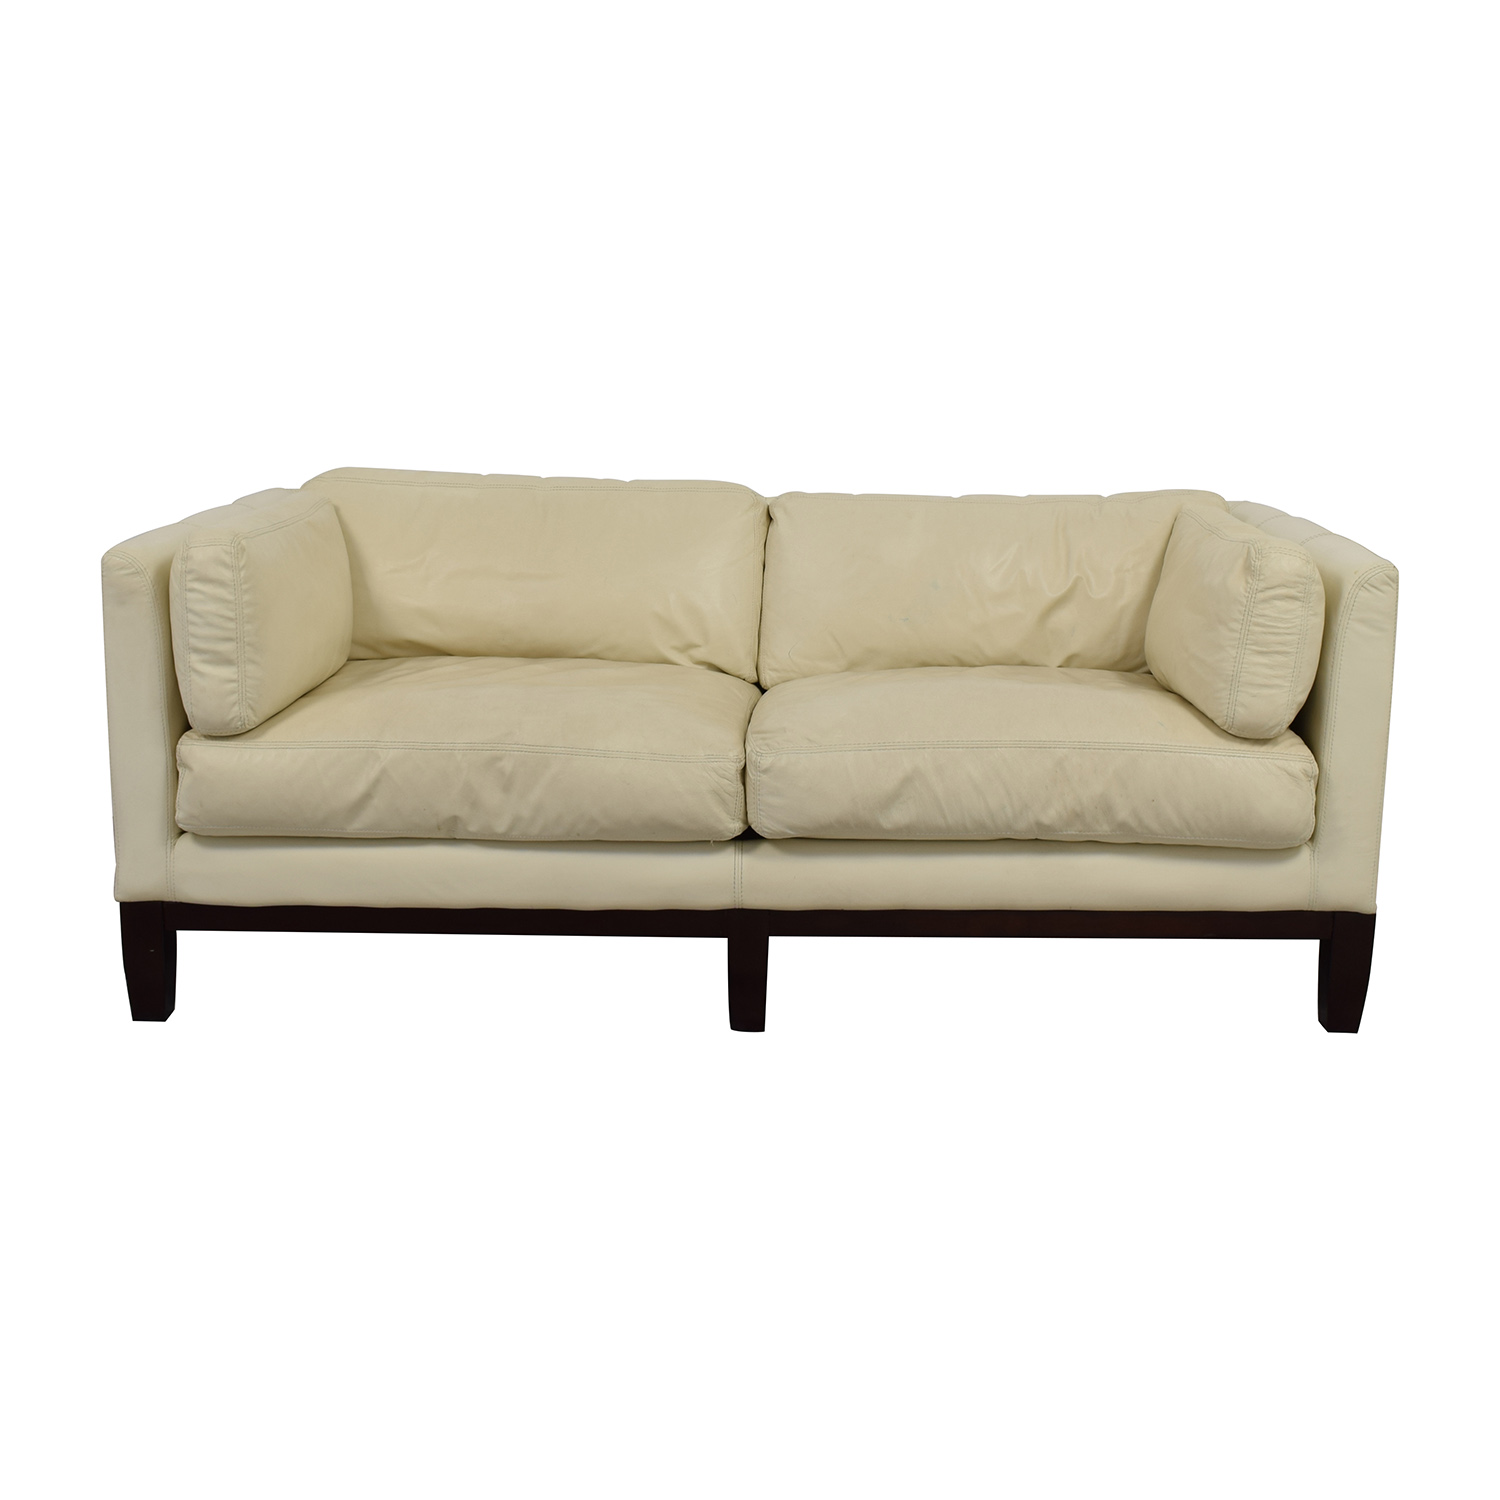 Decoro Decoro Off White Leather Sofa Dimensions ...